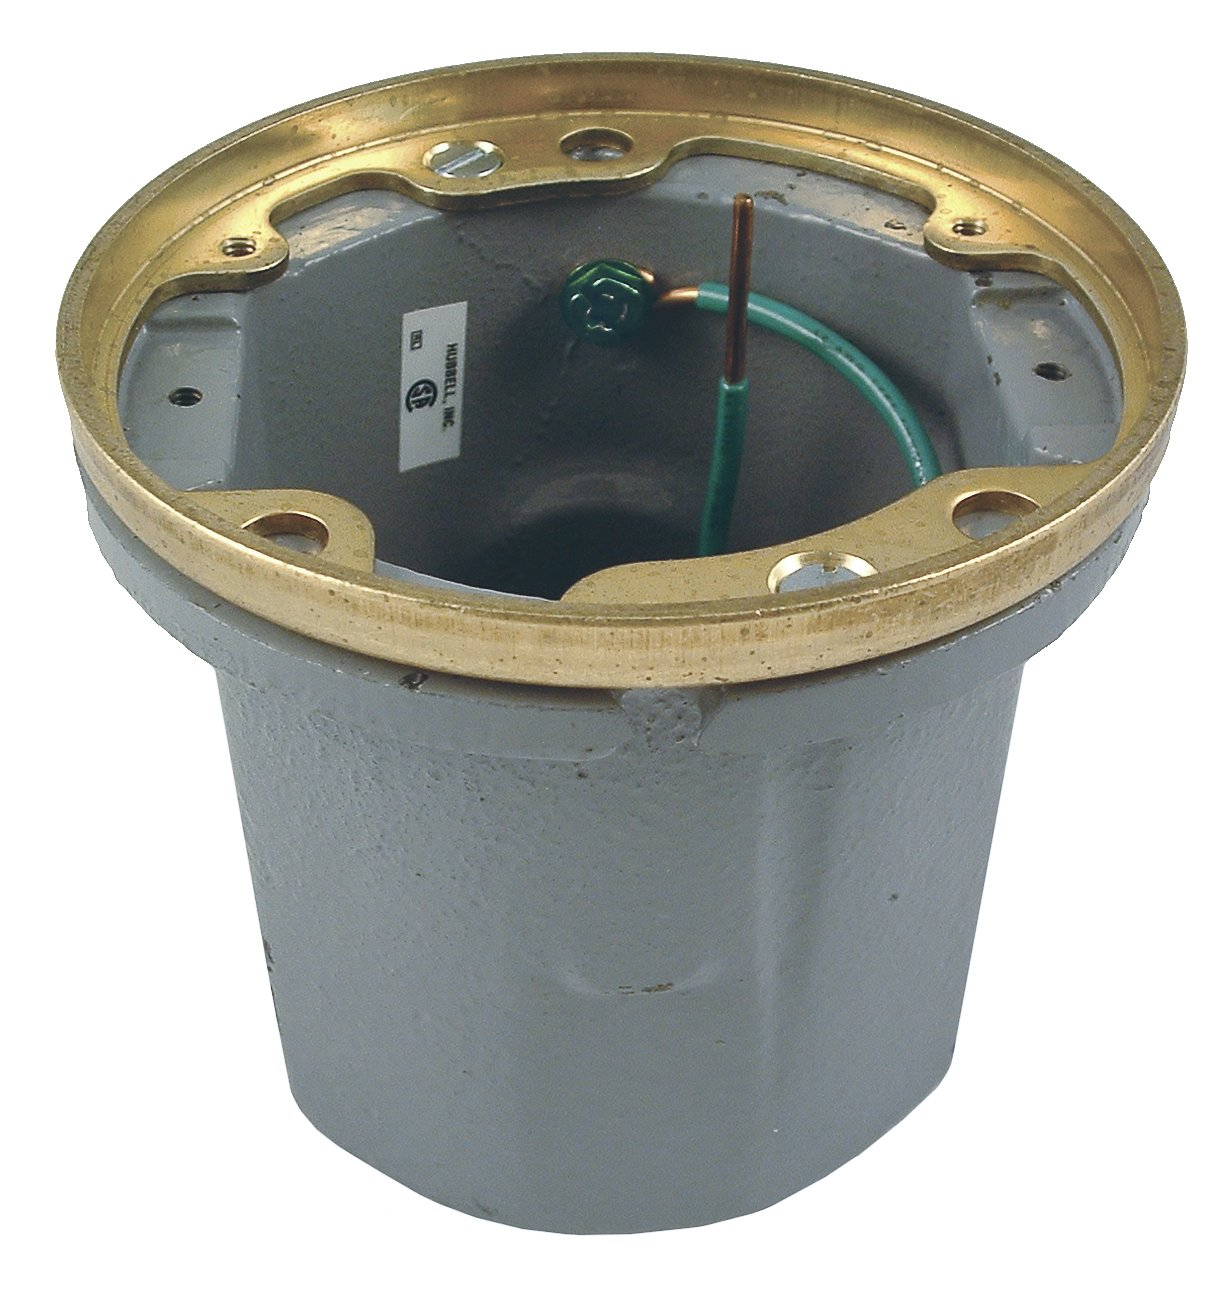 Hubbell-Raco 6223 18.5 Cubic Inch Round Non-Adjustable Wood Floor Box